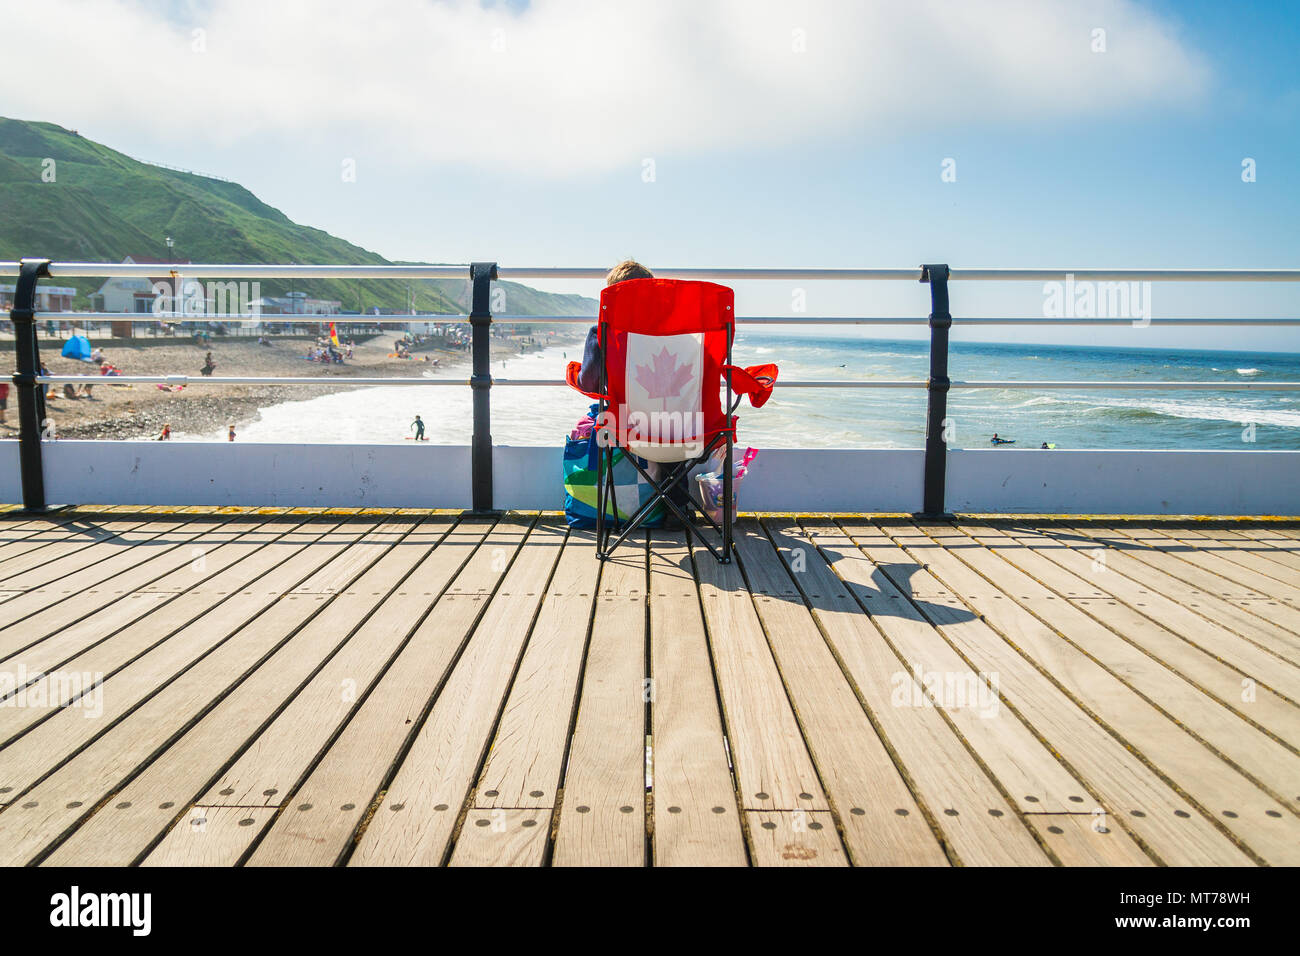 Sitting on the pier wasting time - Stock Image